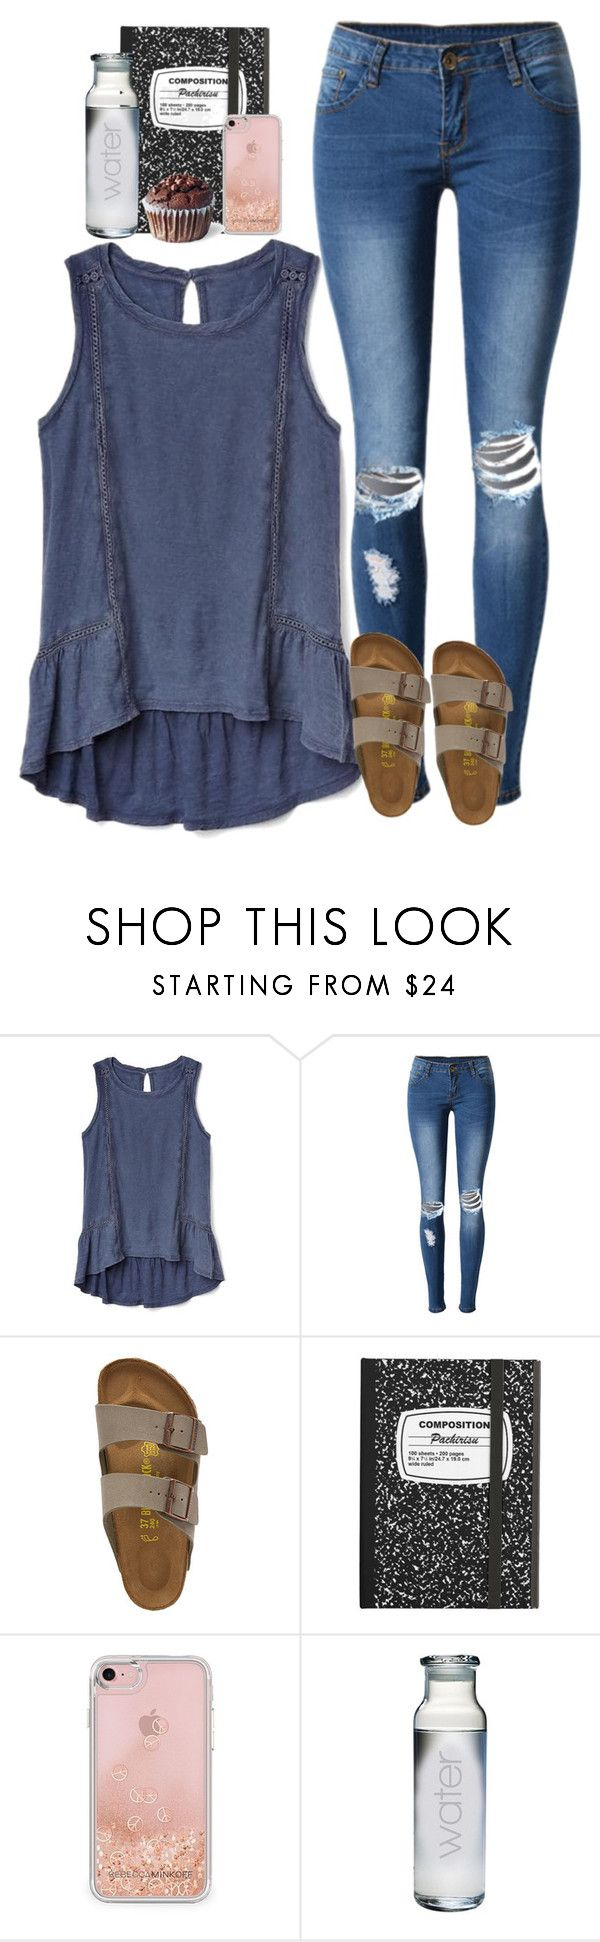 """You're my Kryptonite"" by labures on Polyvore featuring Gap, WithChic, Birkenstock and Rebecca Minkoff"